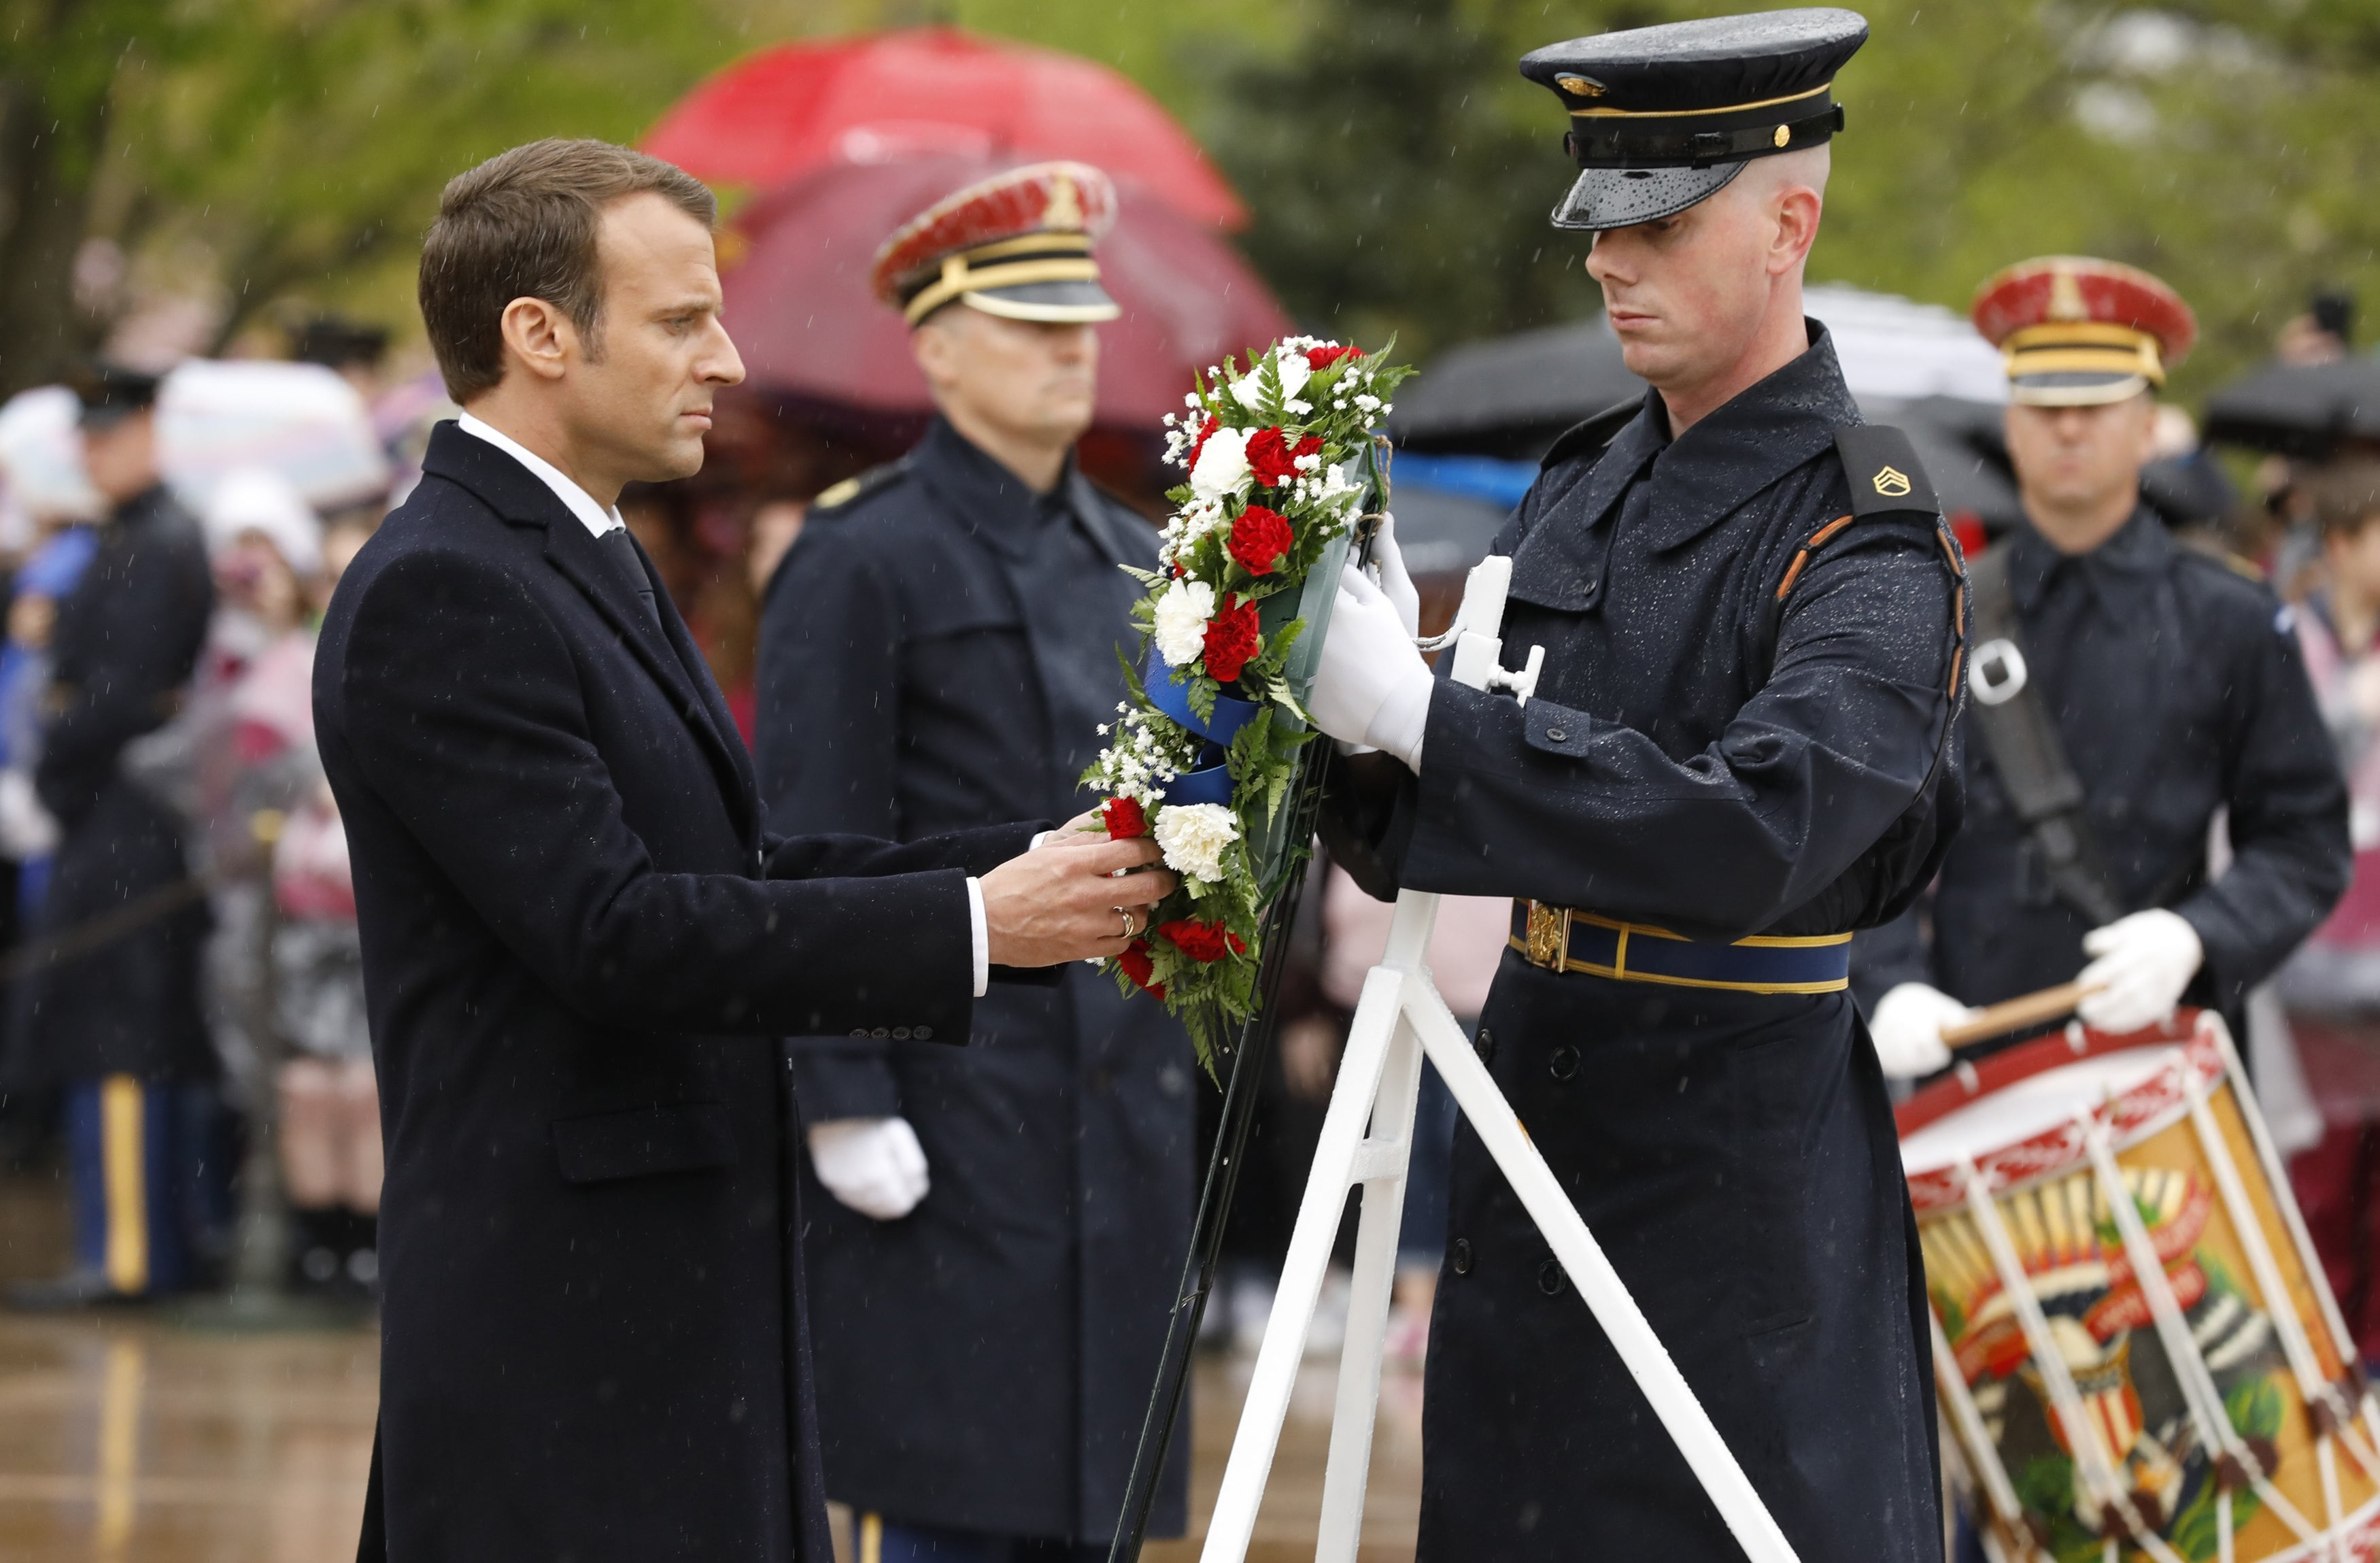 French President Macron places a wreath at the Tomb of the Unknown Soldier in Arlington National Cemetery outside Washington